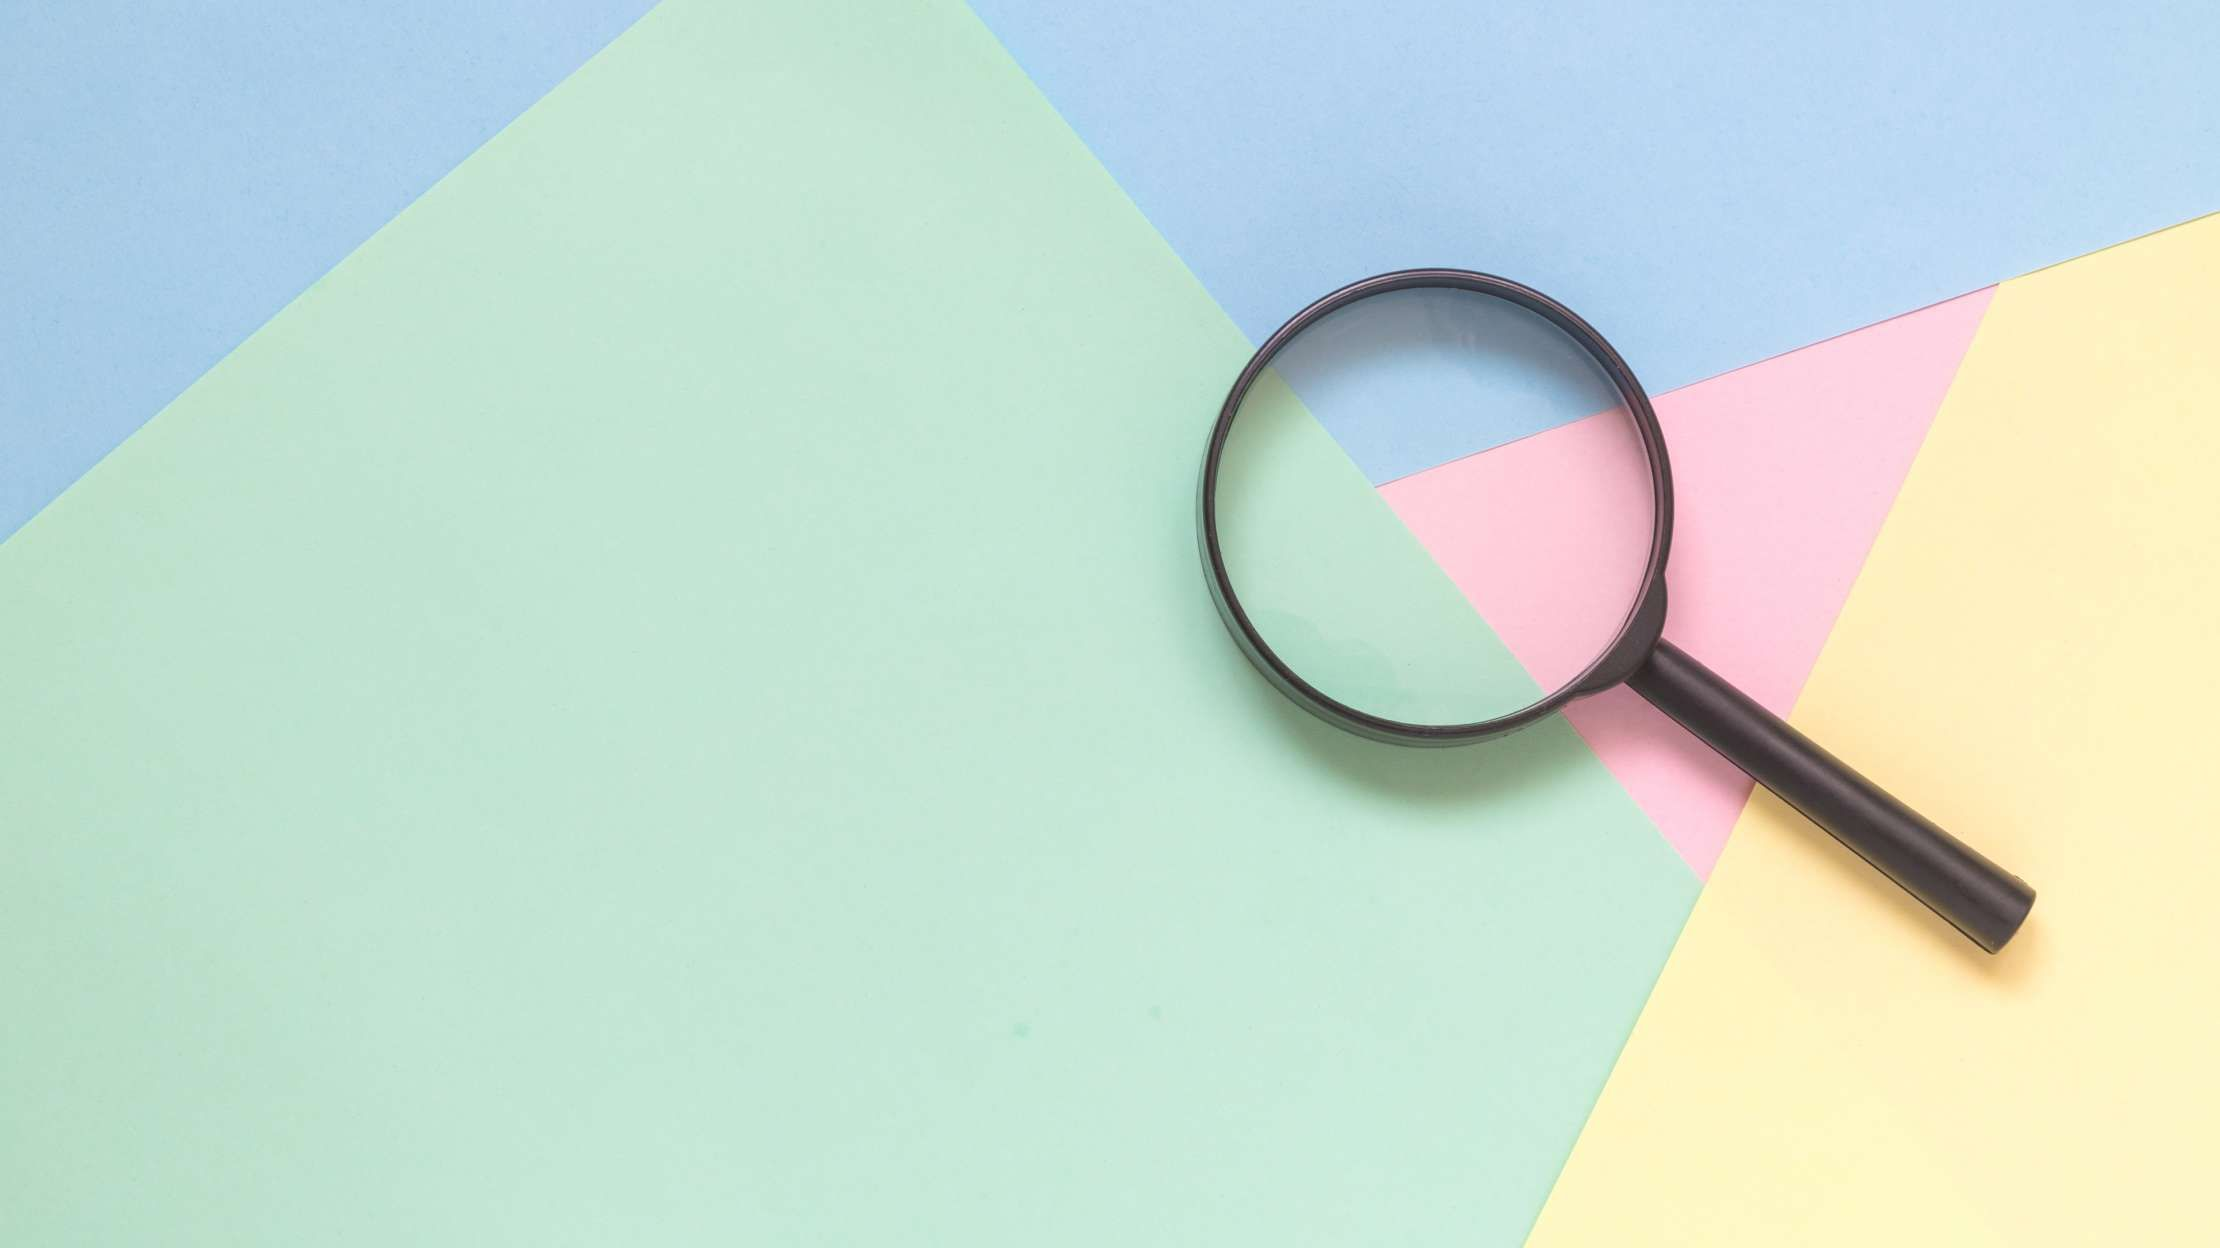 How to use the iphones hidden magnifying glass feature